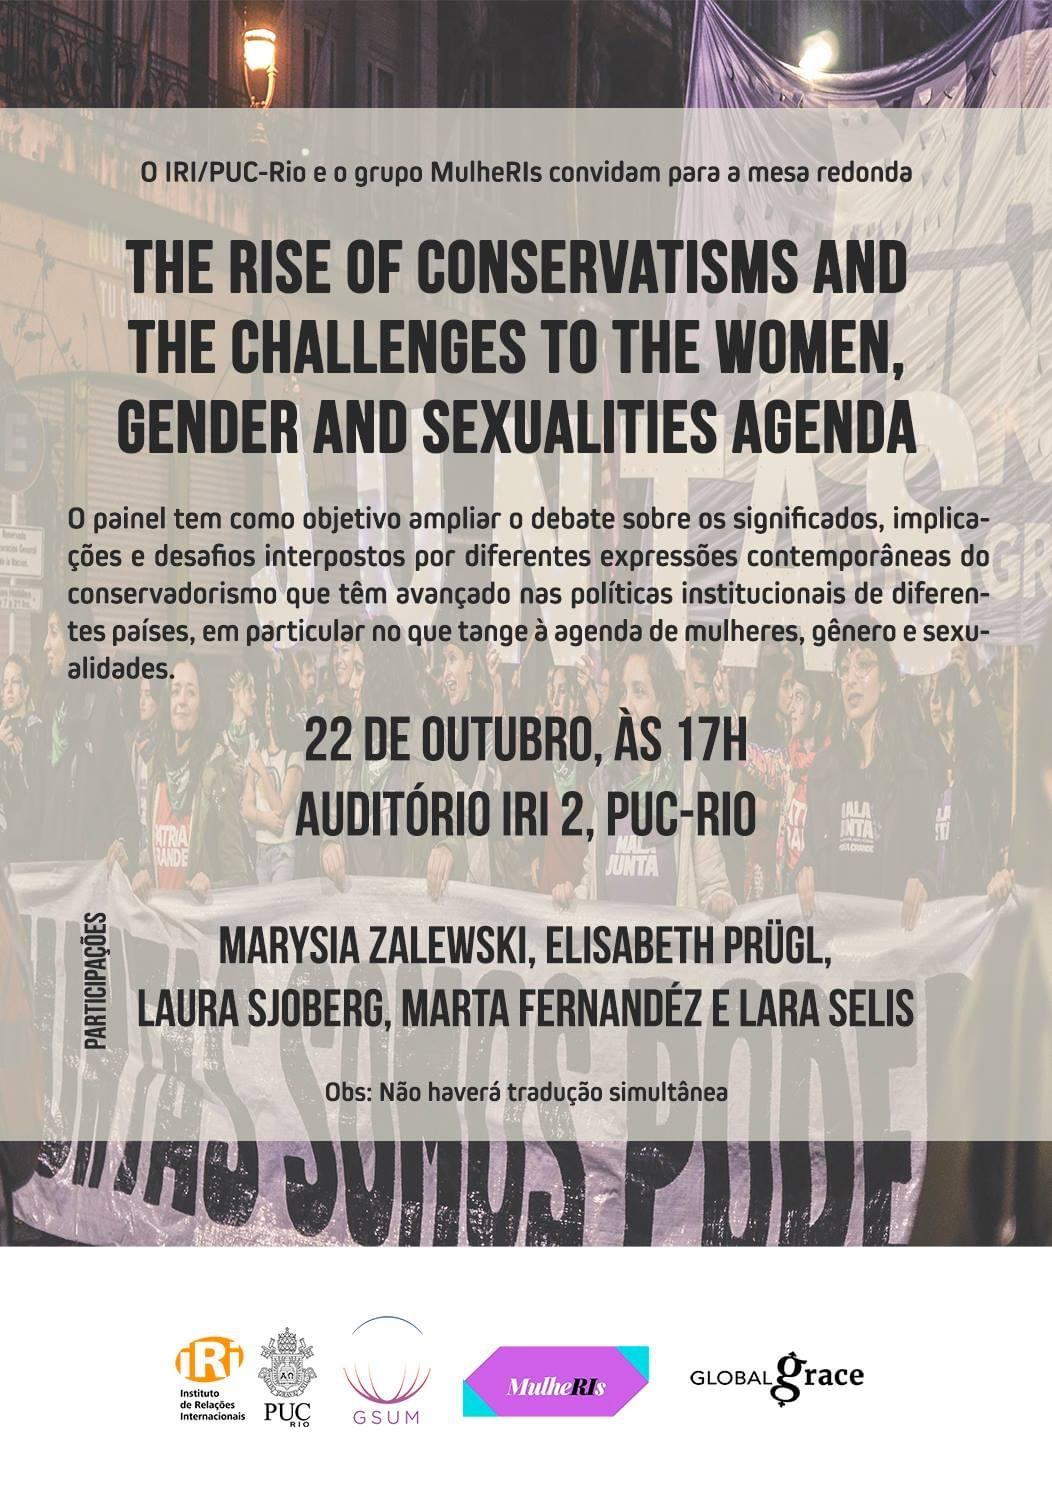 The Rise of Conservatisms and the Challenges to the Women, Gender and Sexualities Agenda